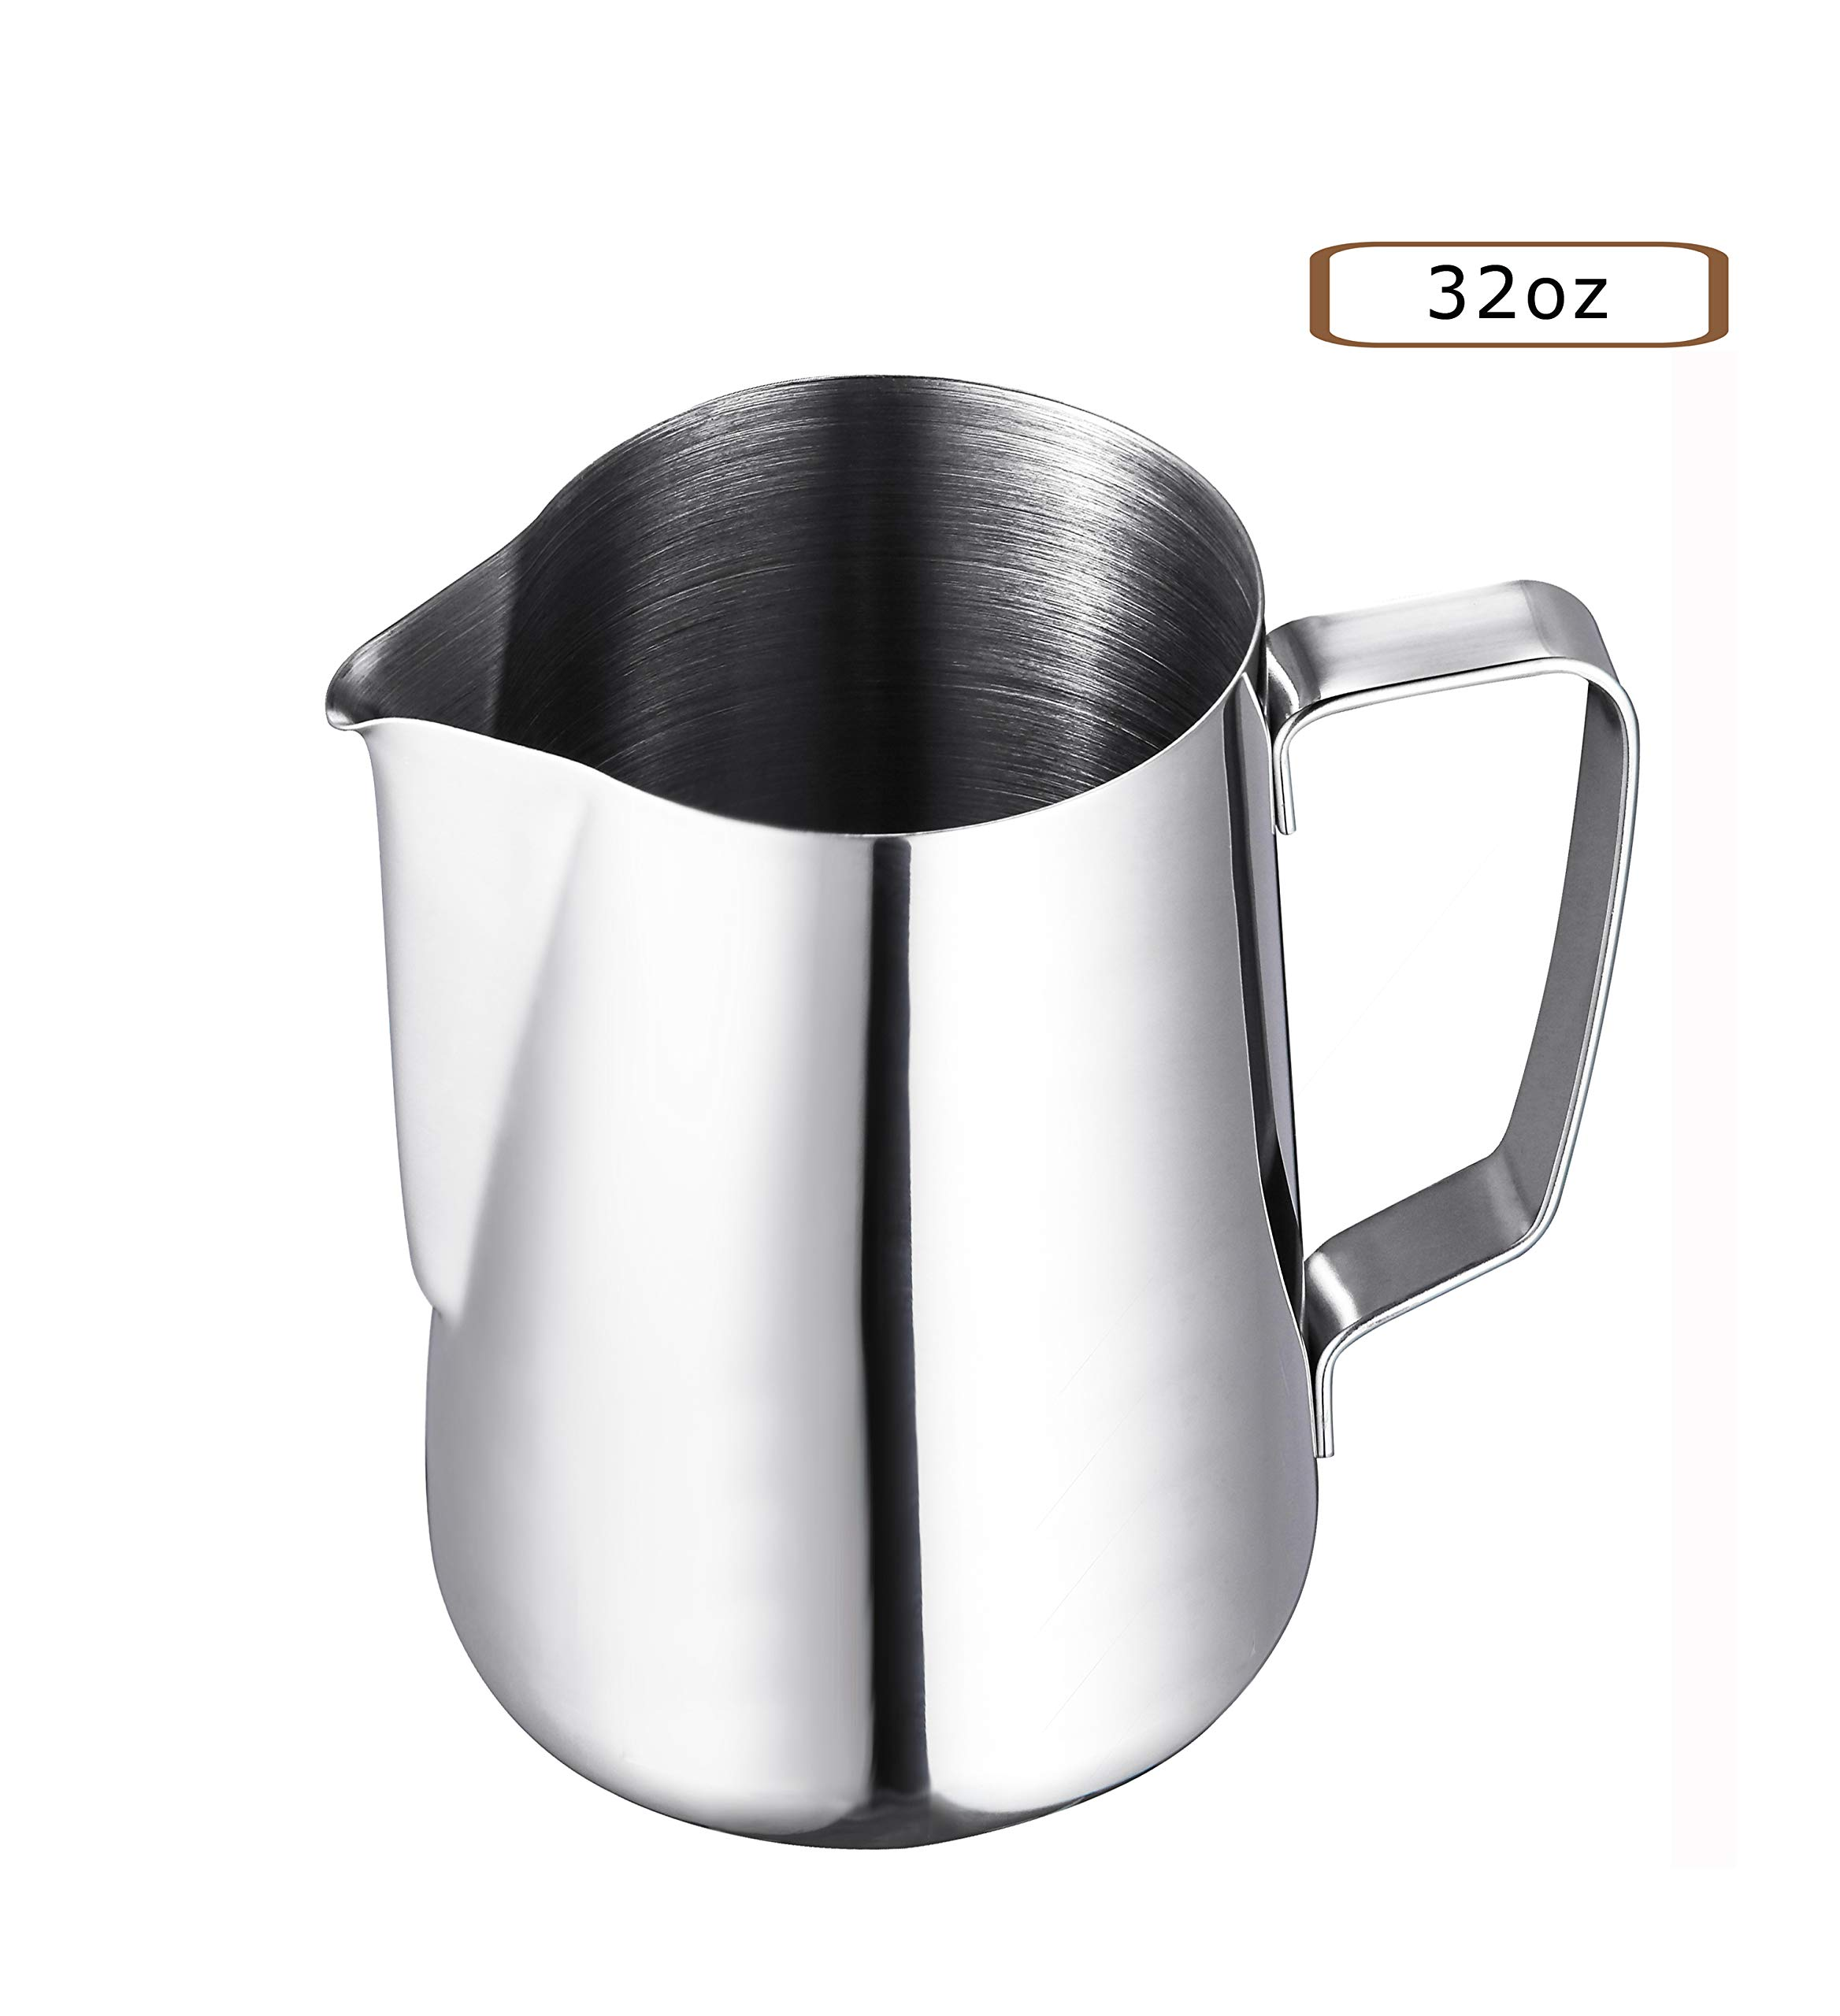 Coffee Tree Stainless Steel Milk Frother Pitcher for Espresso Coffee Machine, Cappuccino Latte Making (32oz)